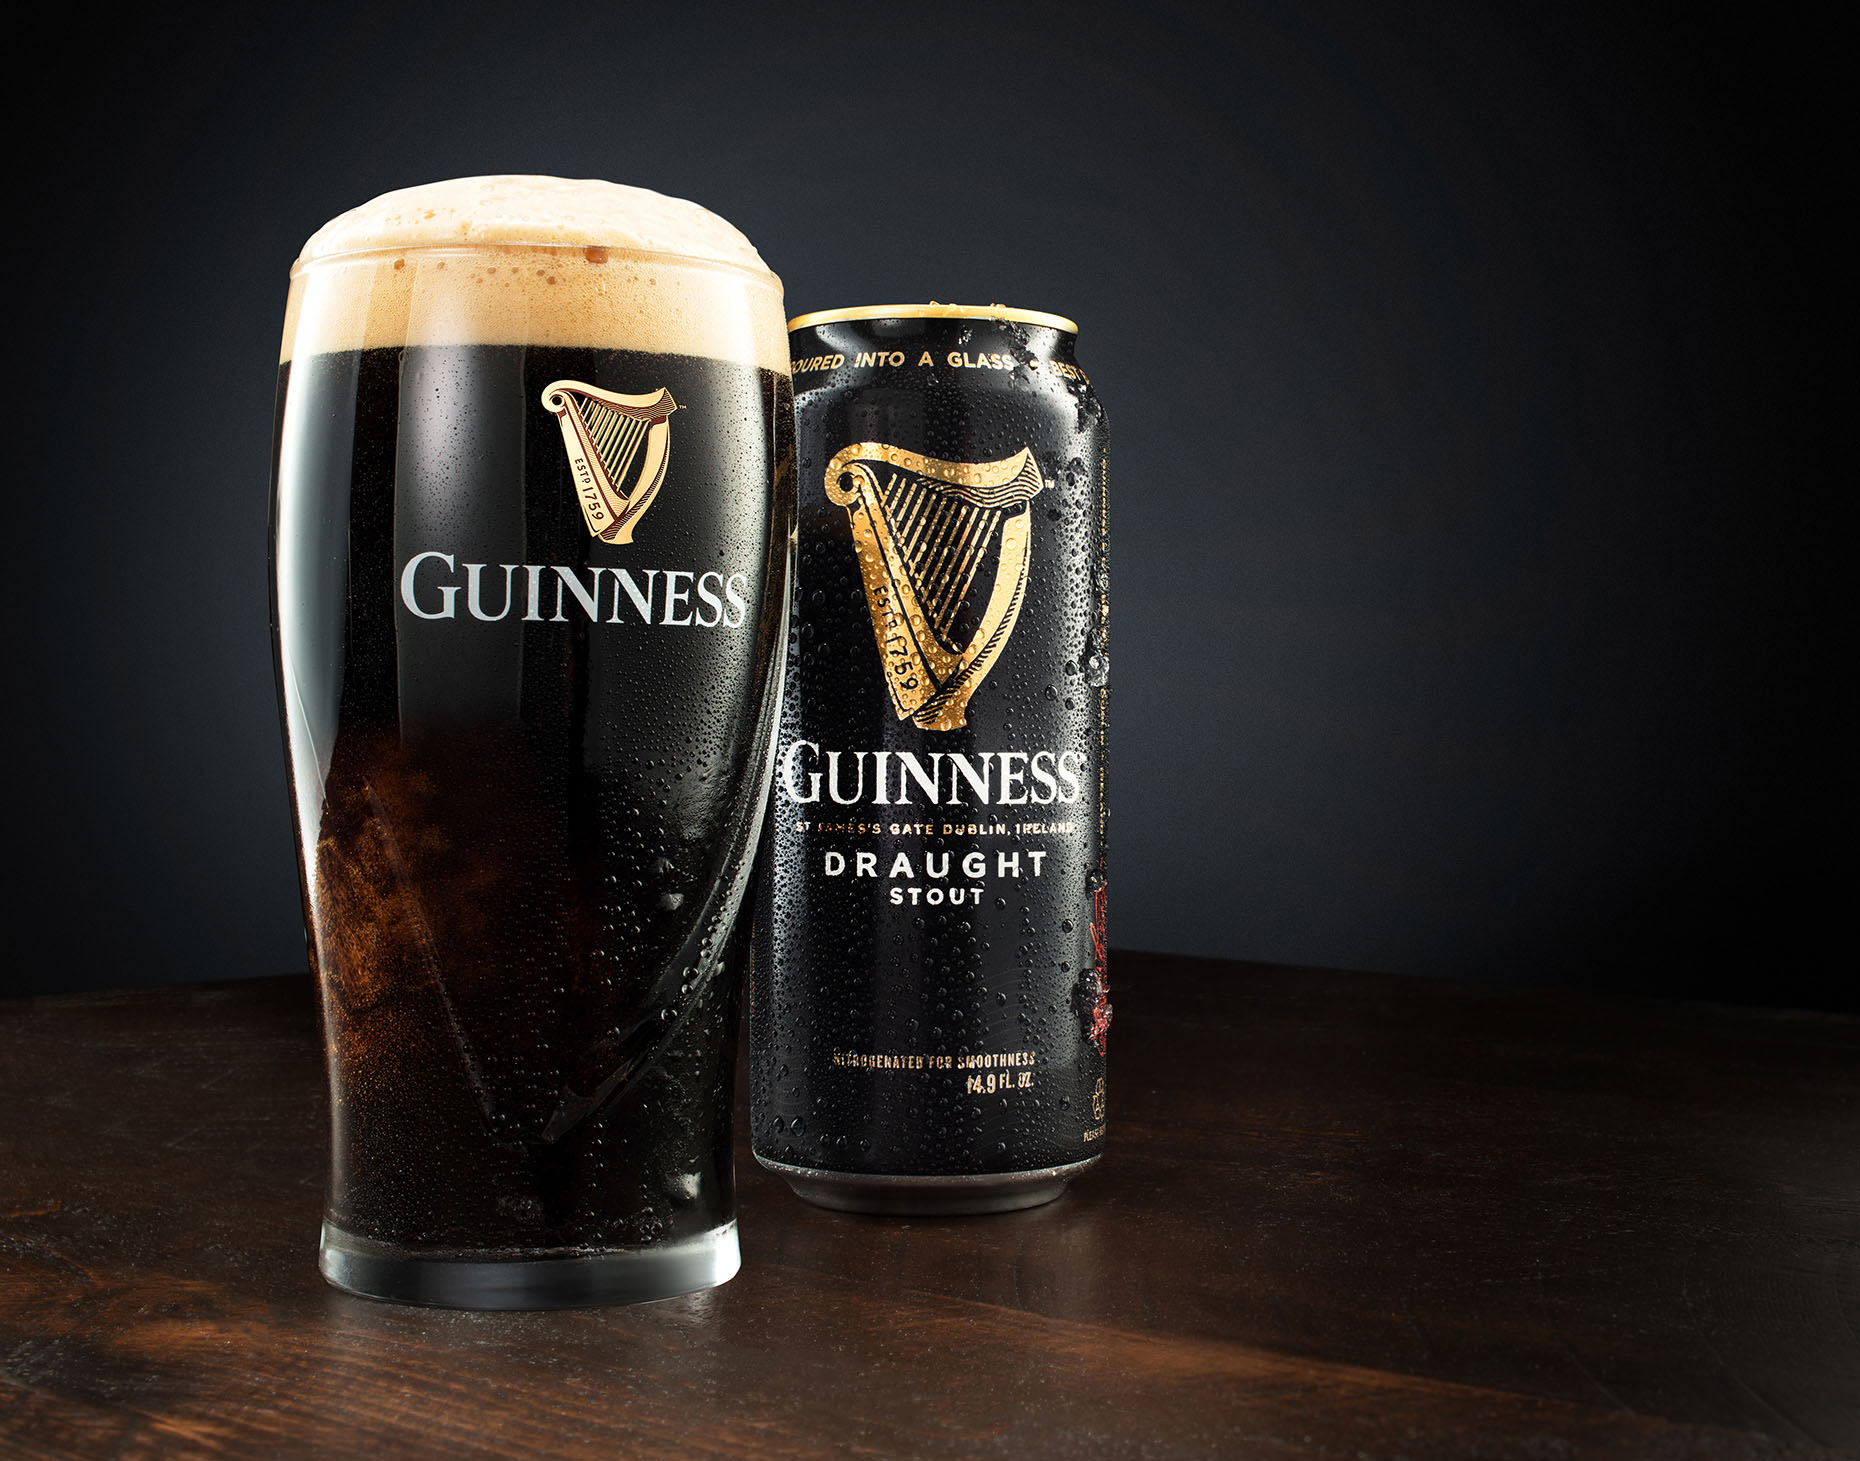 New-york-beverage-photography-stilllife-phtography-liquid-drink-photography-guinness